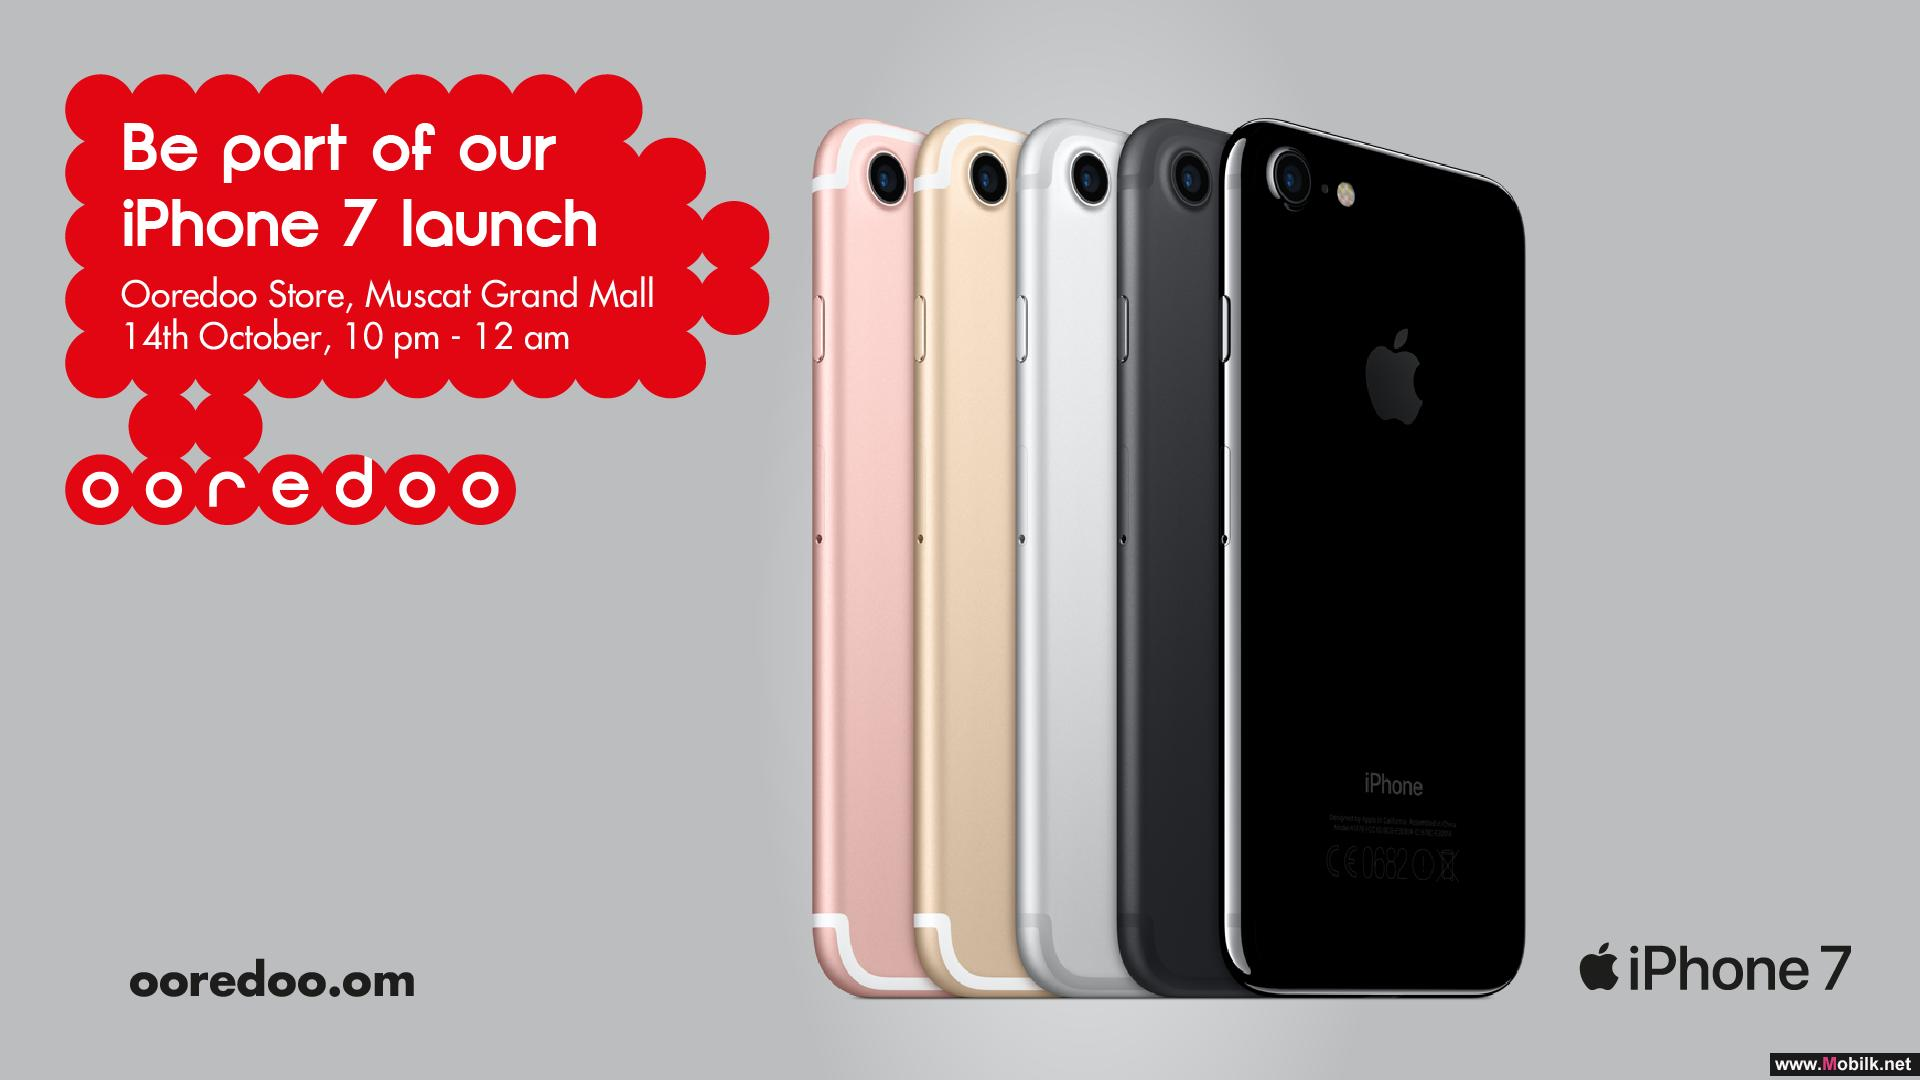 Mobilk - Ooredoo Launches the iPhone 7 and iPhone 7Plus with a